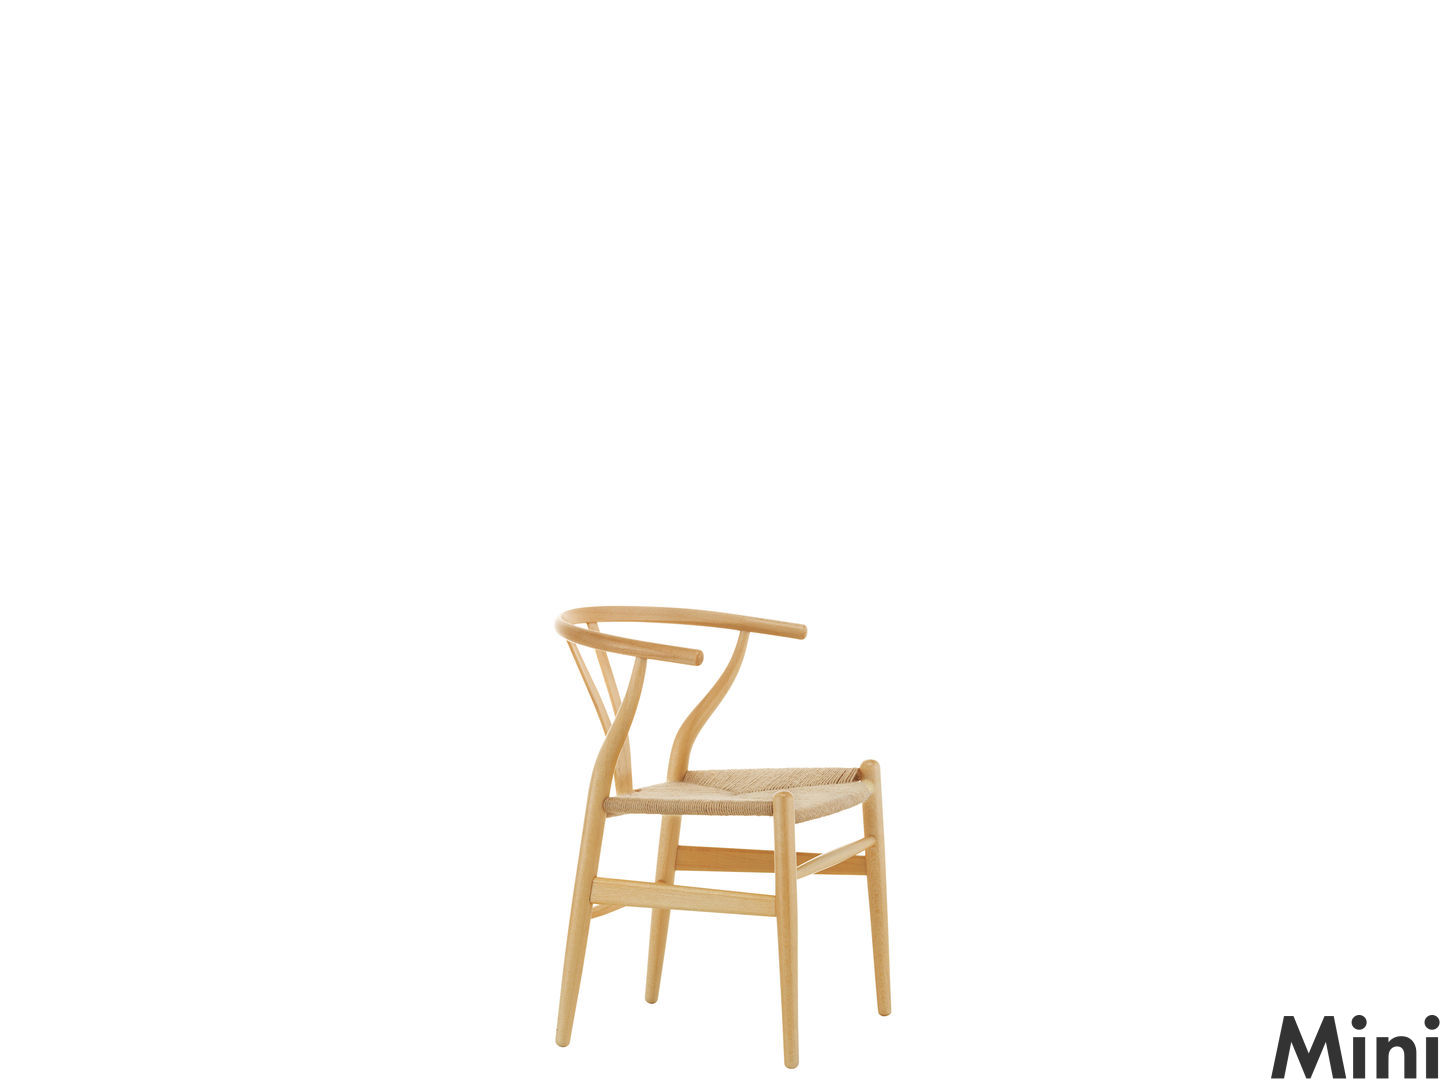 Vitra miniatures collection y chair - Copie mobilier design ...